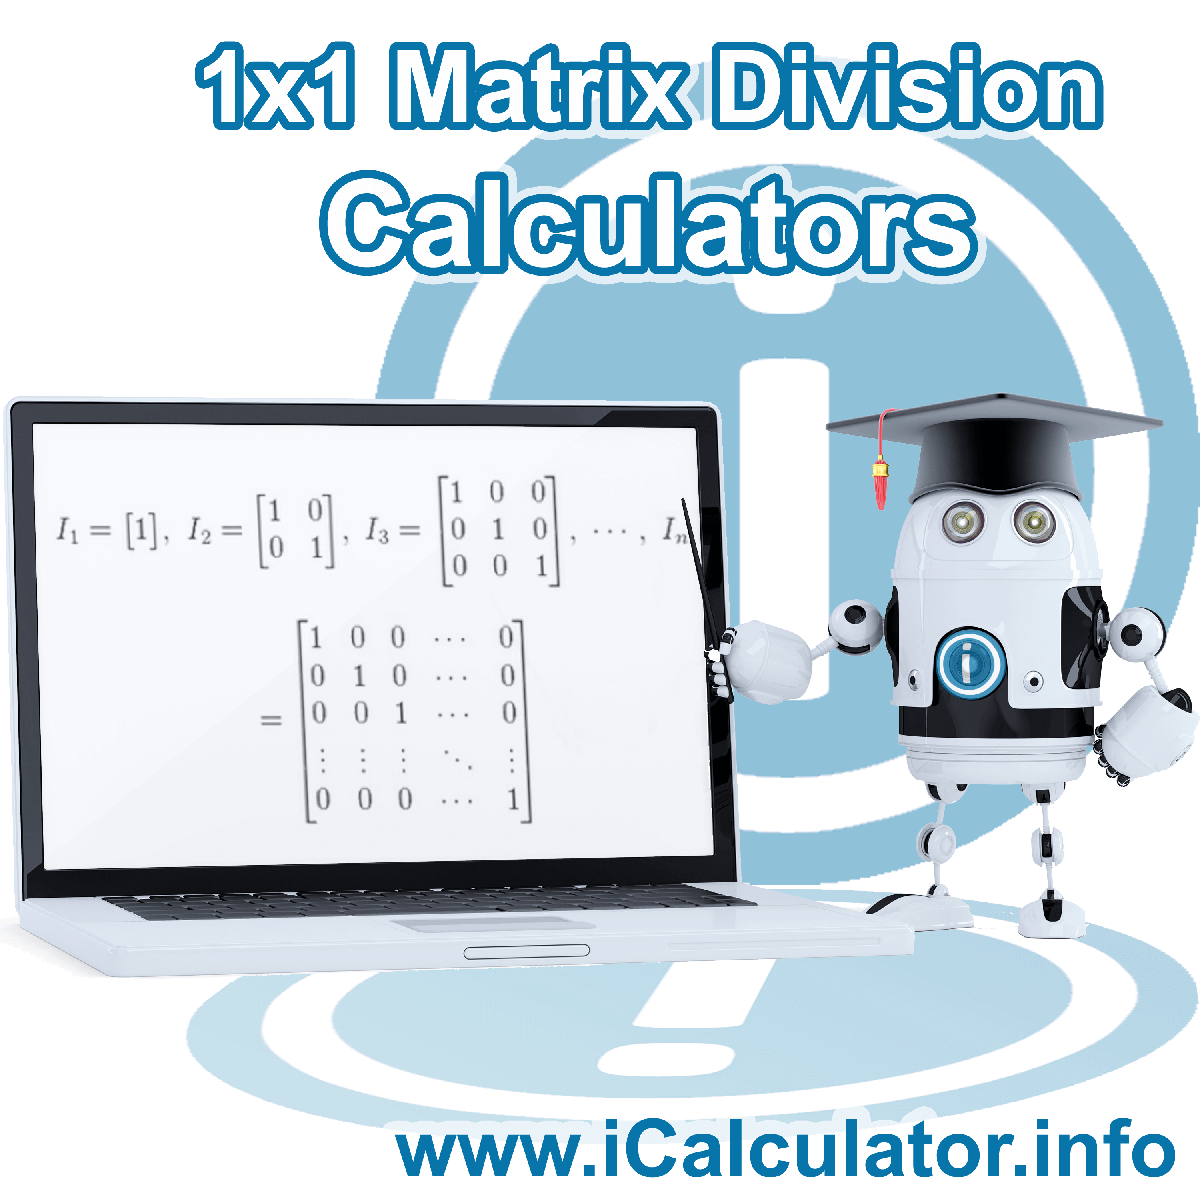 1x1 Matrix Division Calculator. This image shows the properties and Matrix formula for the 1x1 Matrix Division Calculator